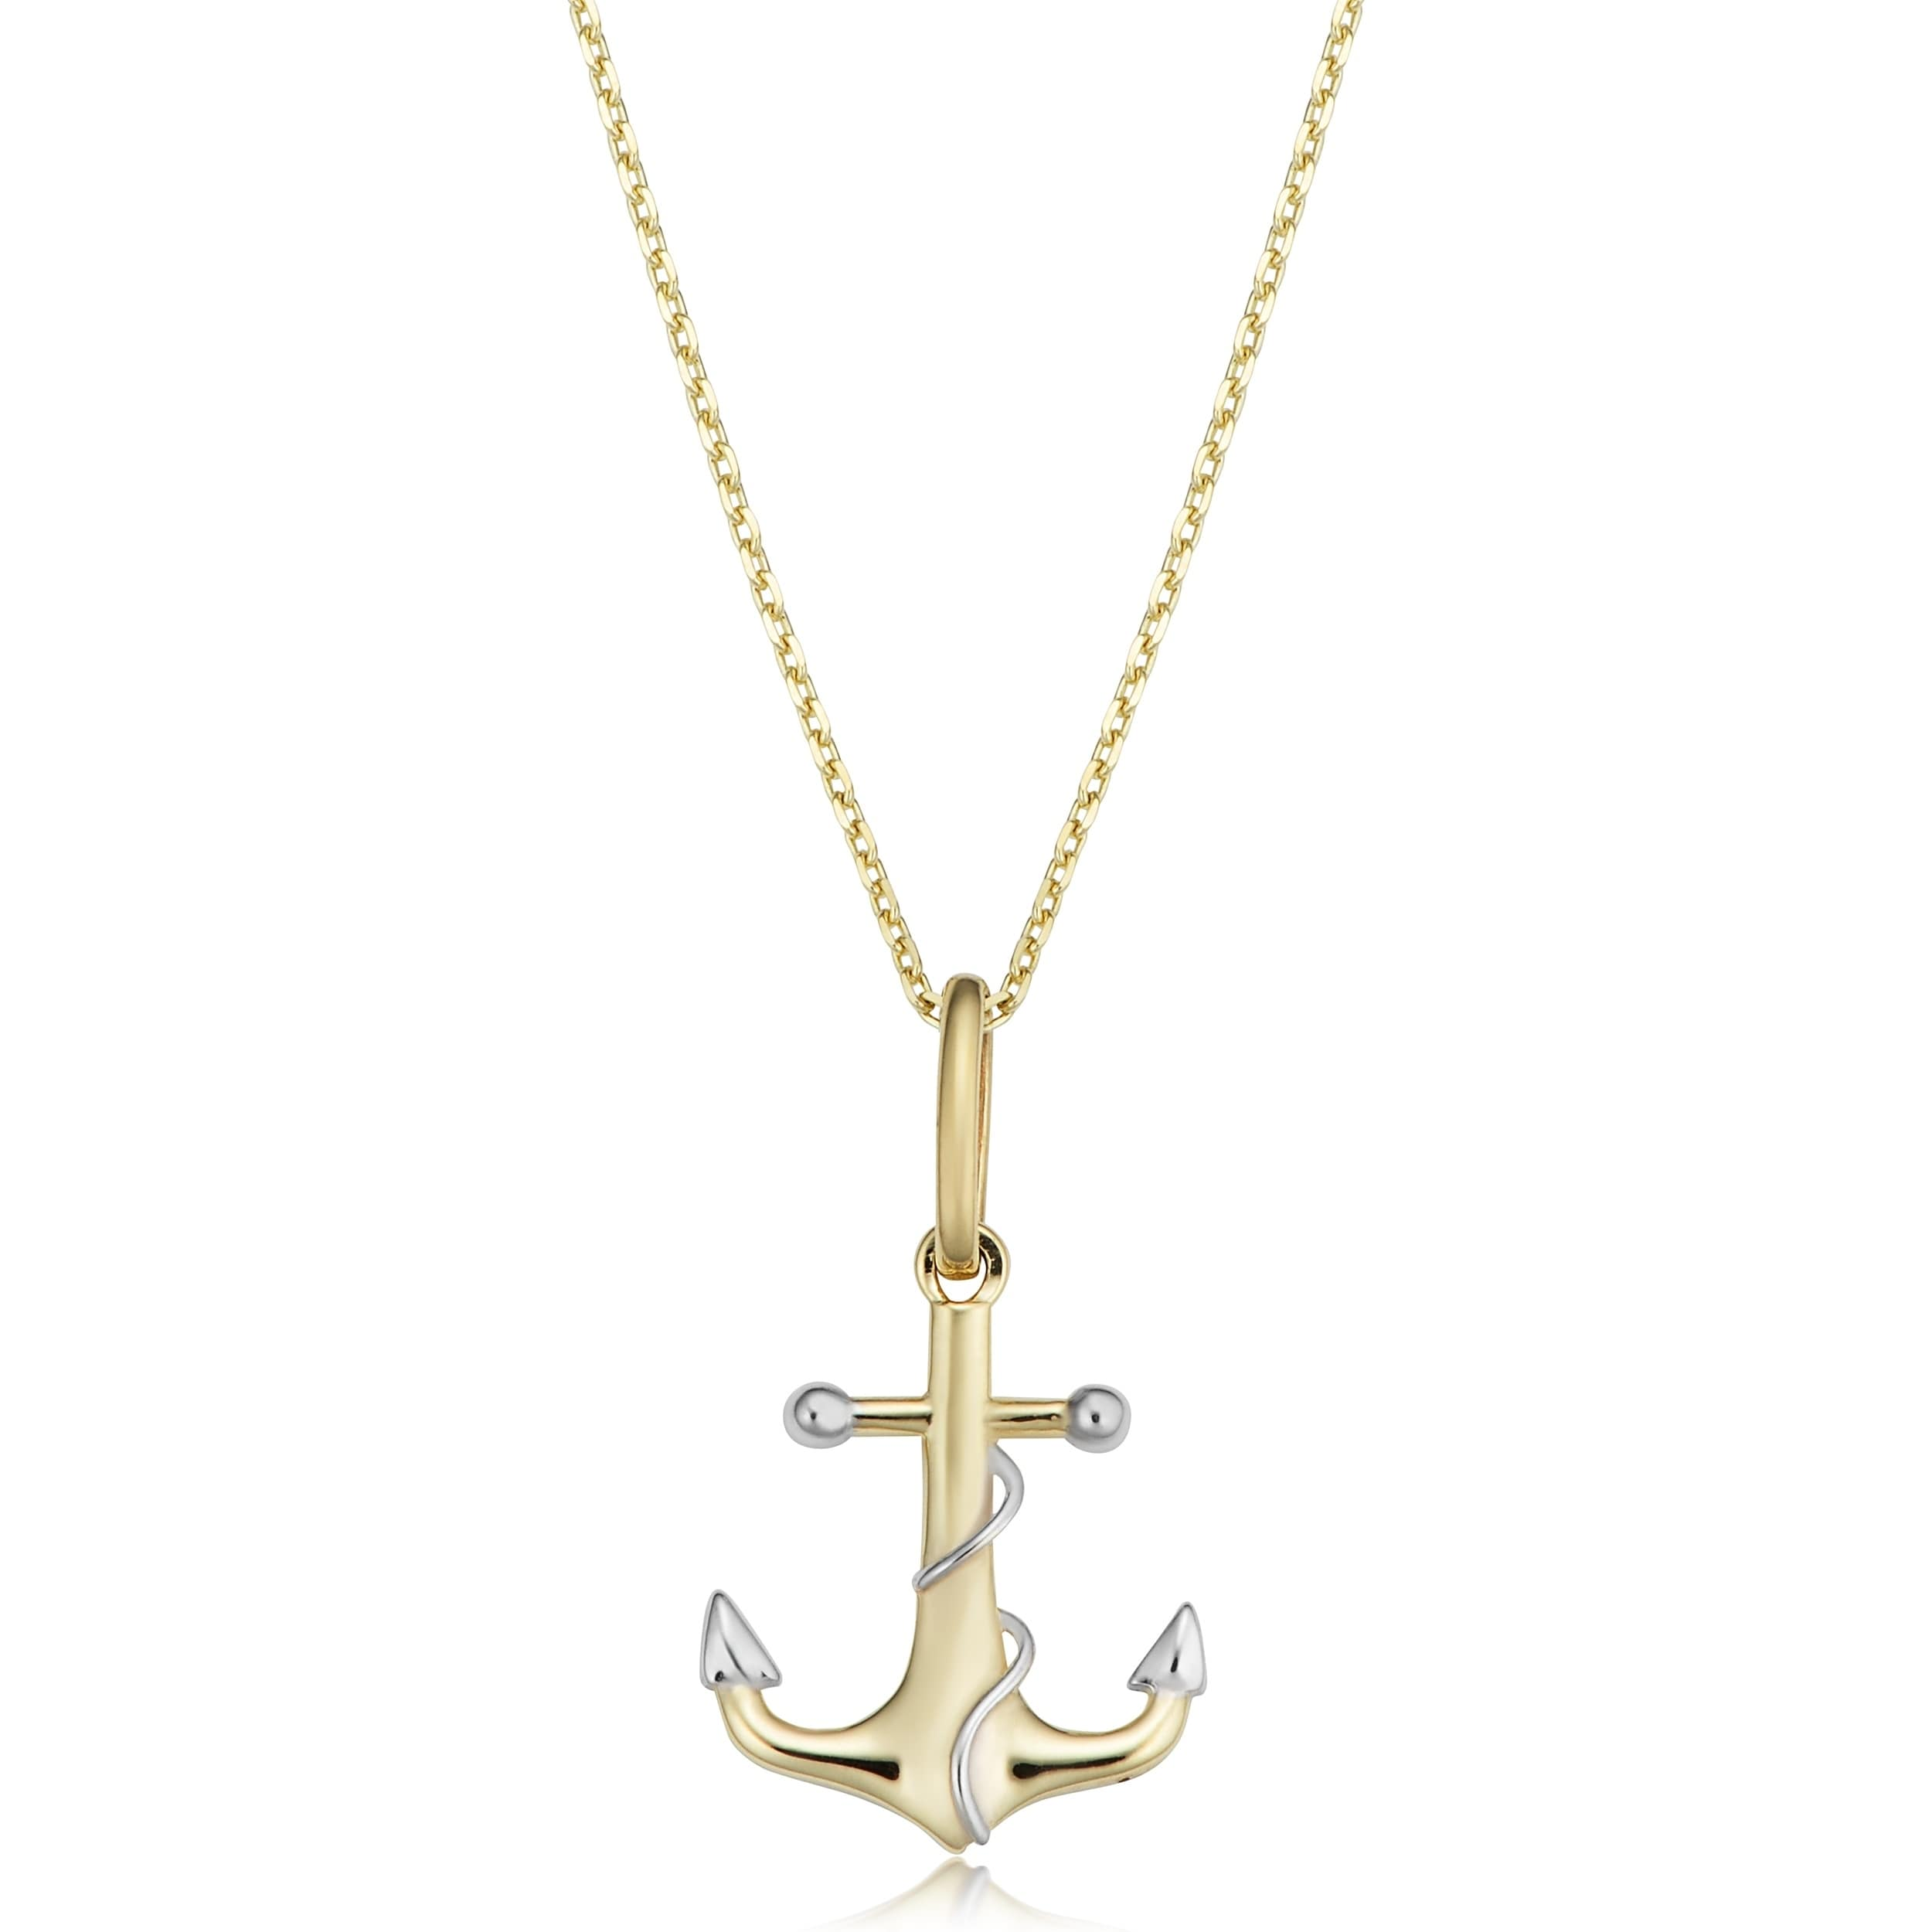 chain shop jewelry flat kt accurate anchor yellow precious necklace gold metals link